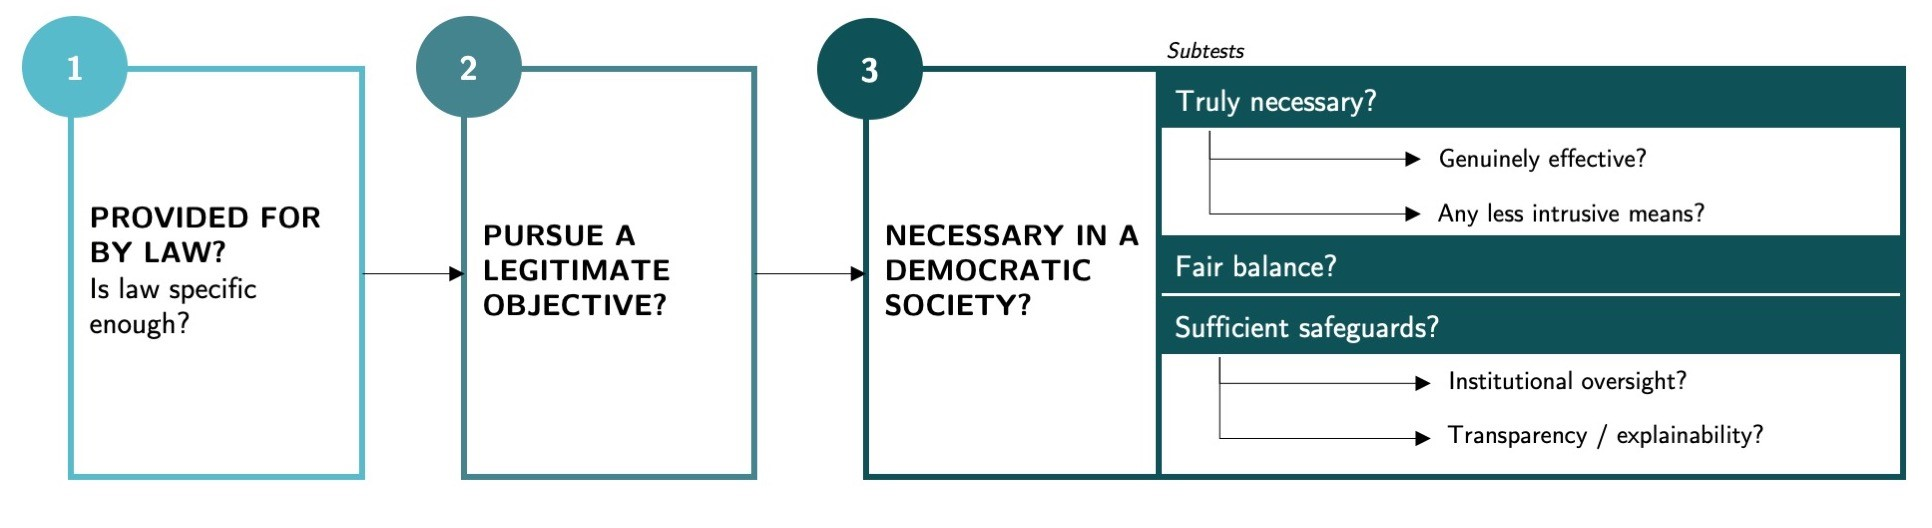 Figure 1: Overview of the three steps of the proportionality test